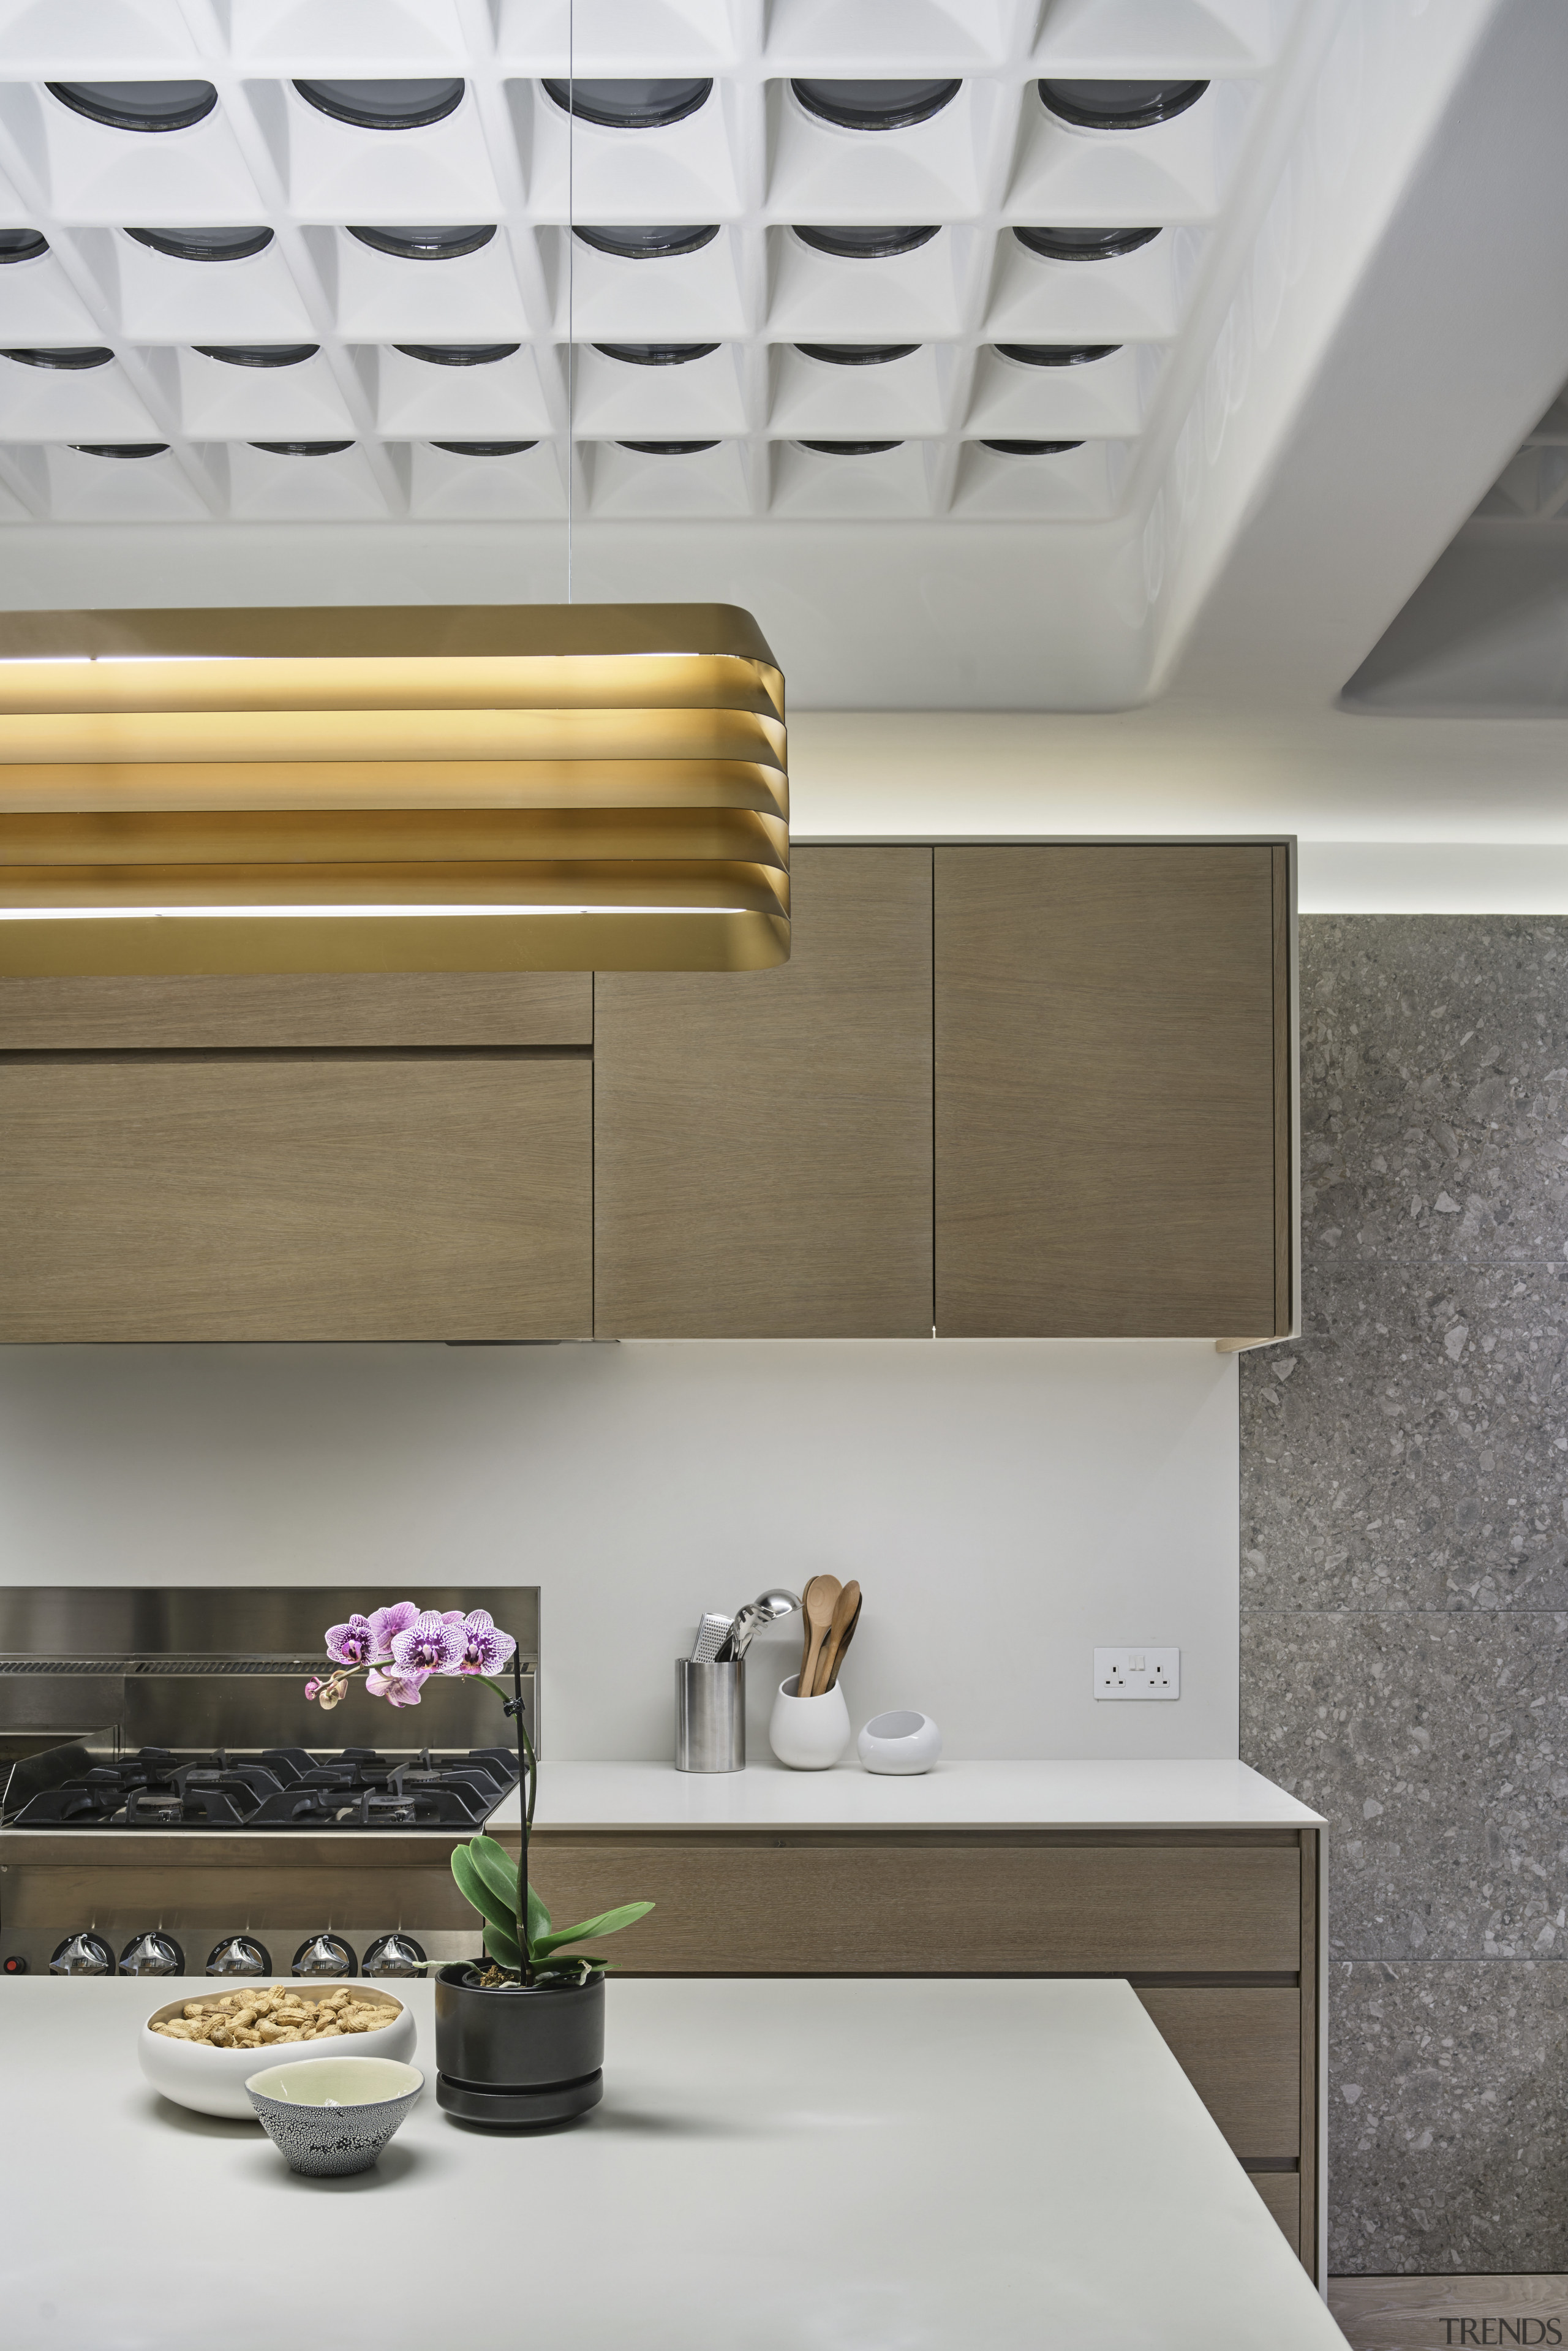 On this project by Andy Martin Architecture, an ceiling, countertop, interior design, kitchen, product design, wall, gray